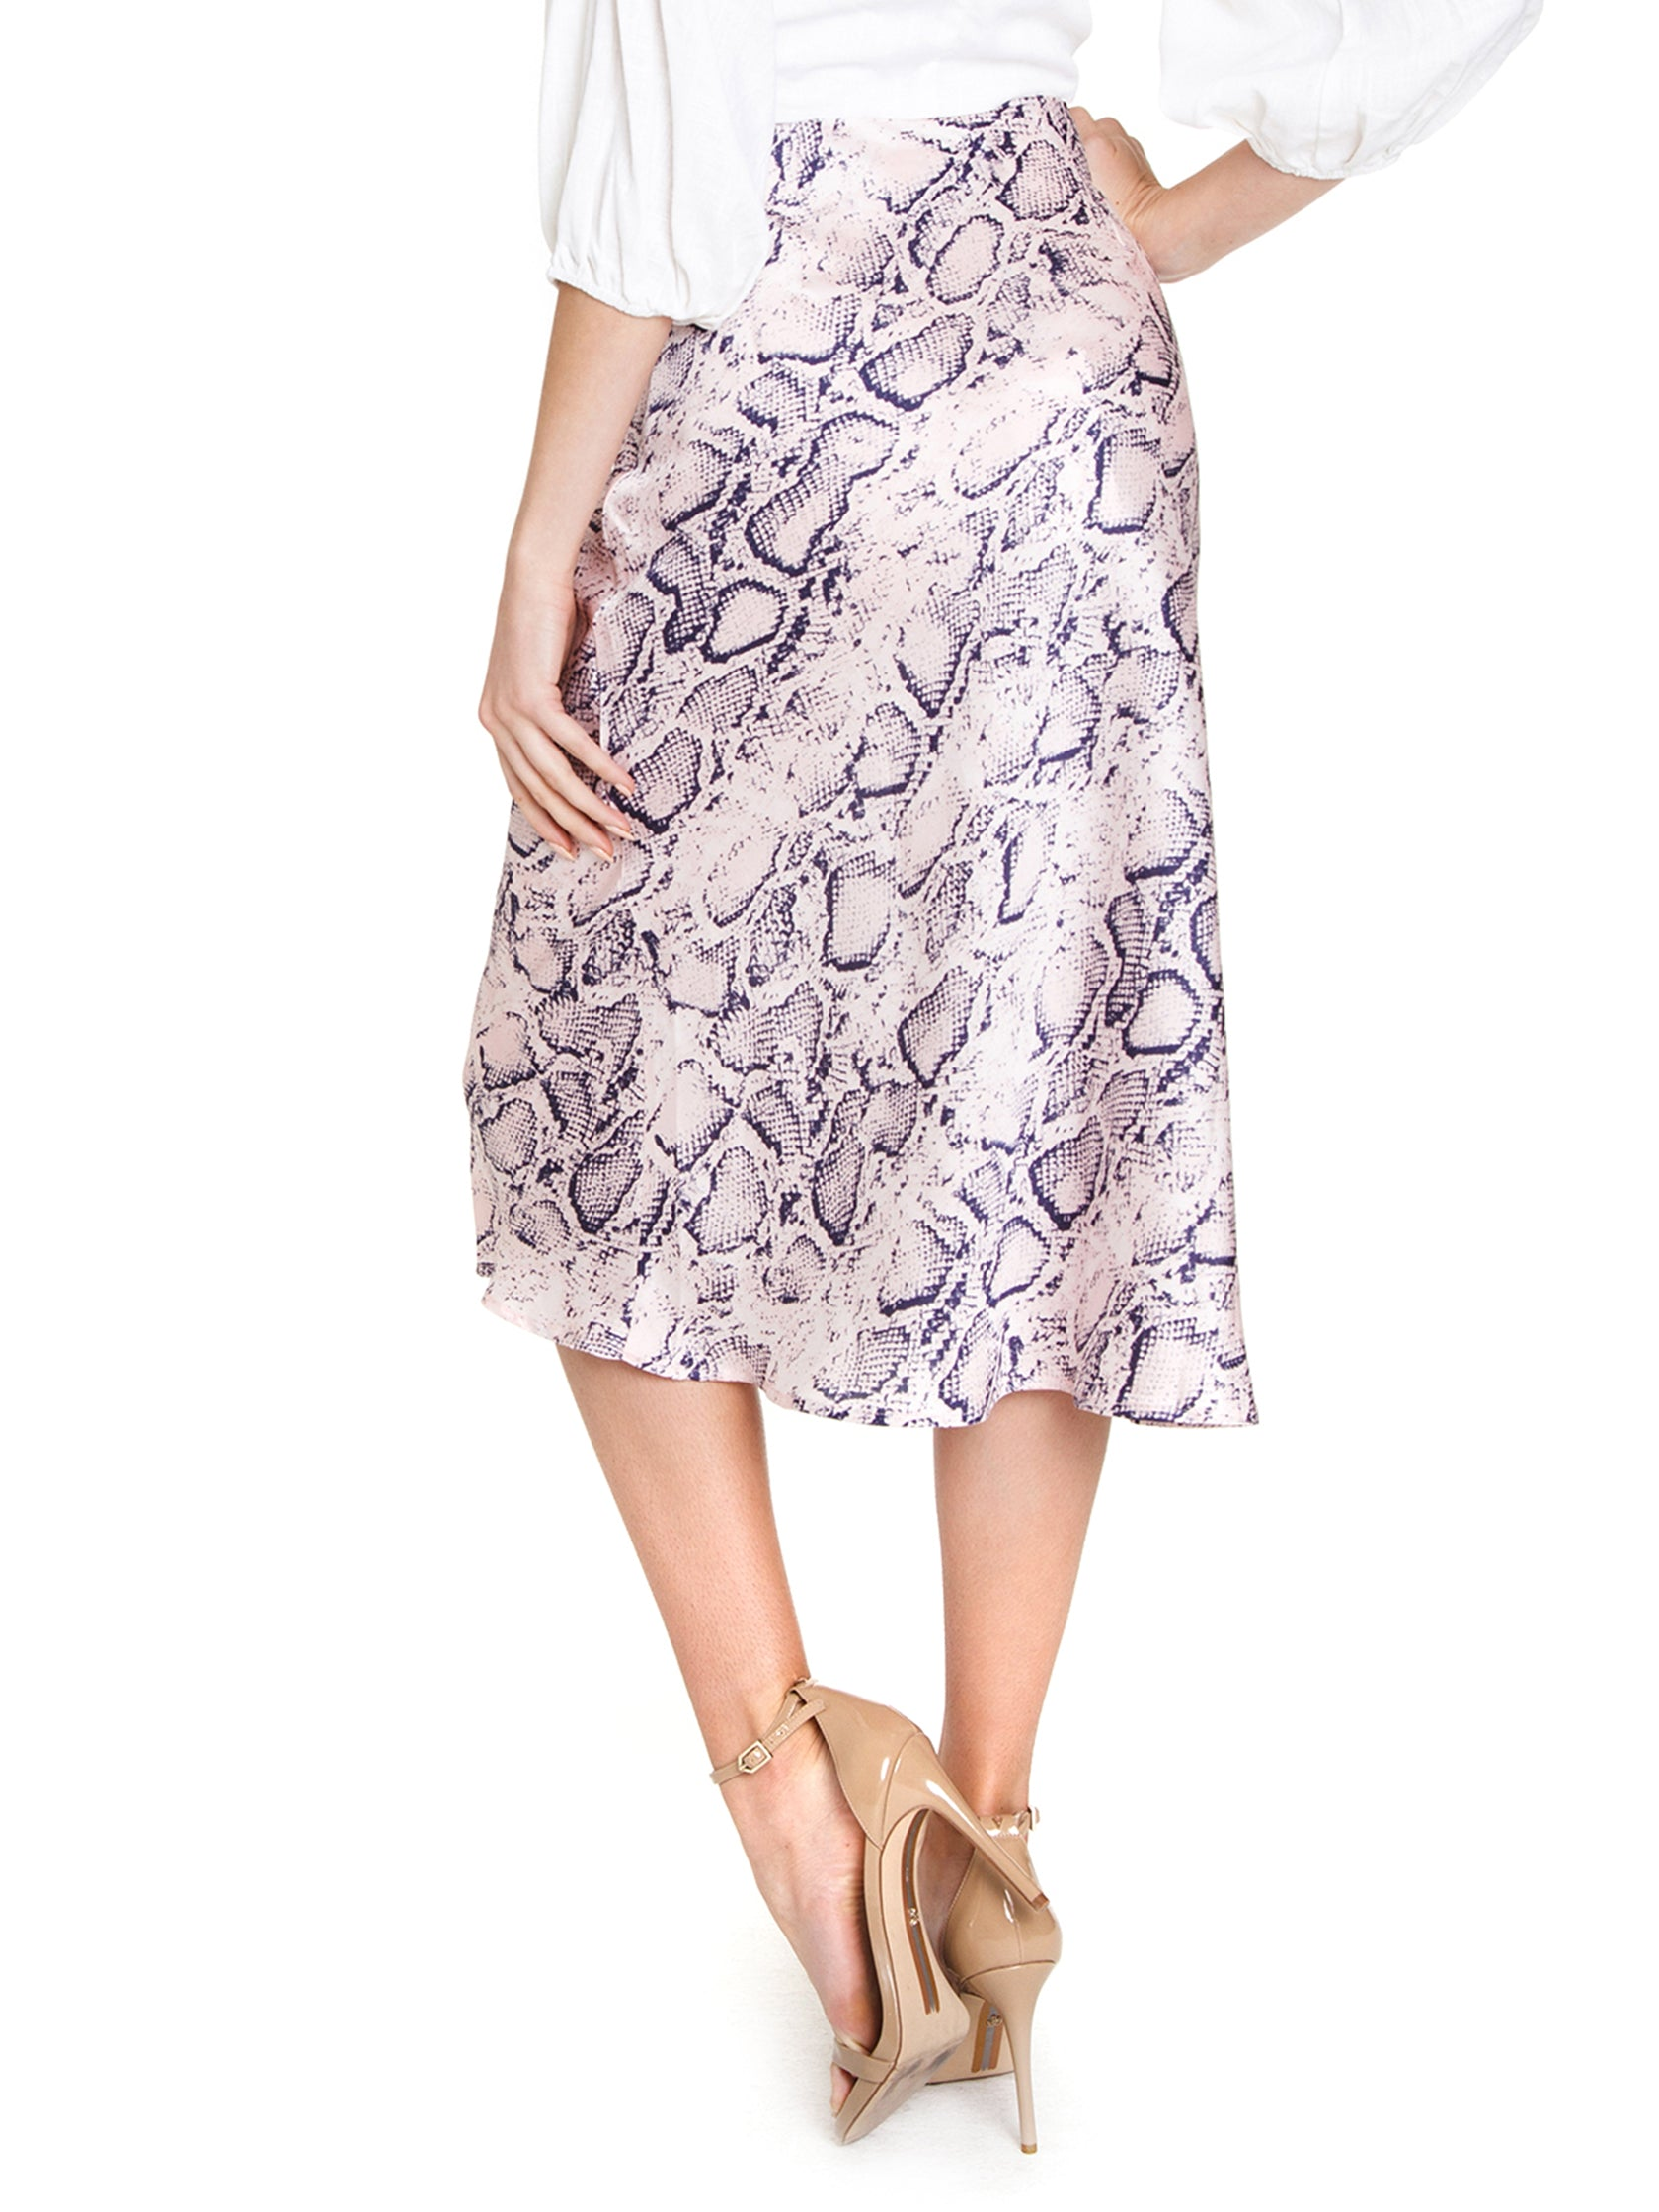 Women outfit in a skirt rental from FashionPass called Snakeskin Midi Skirt